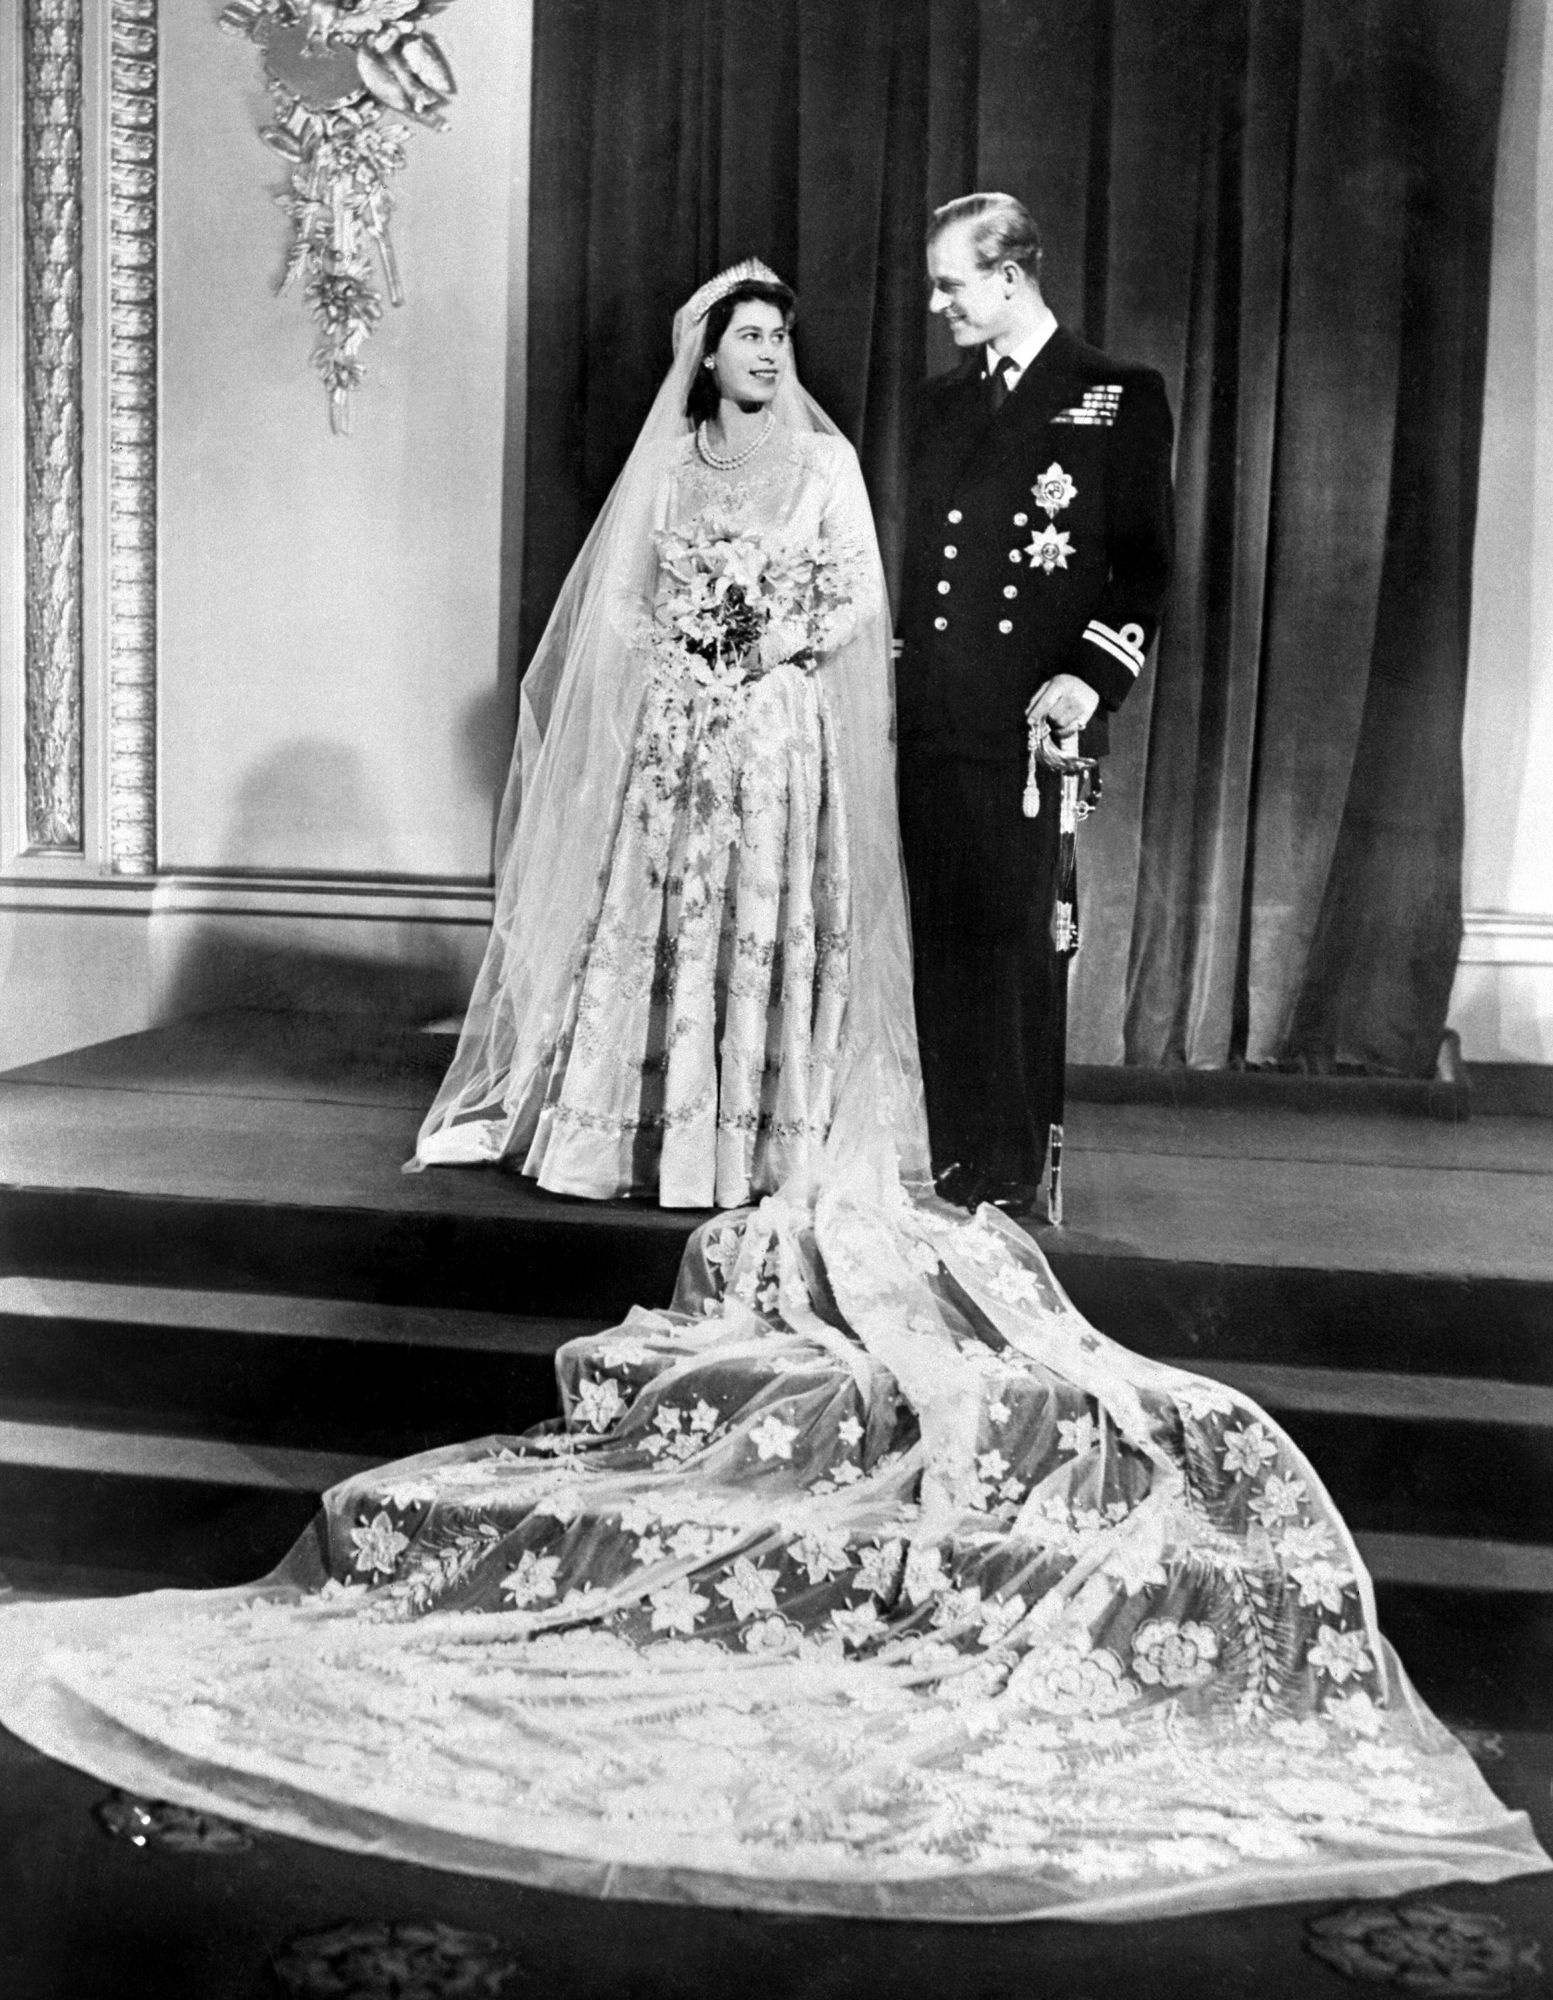 A Look At 7 Decades Of Royal Wedding Dress